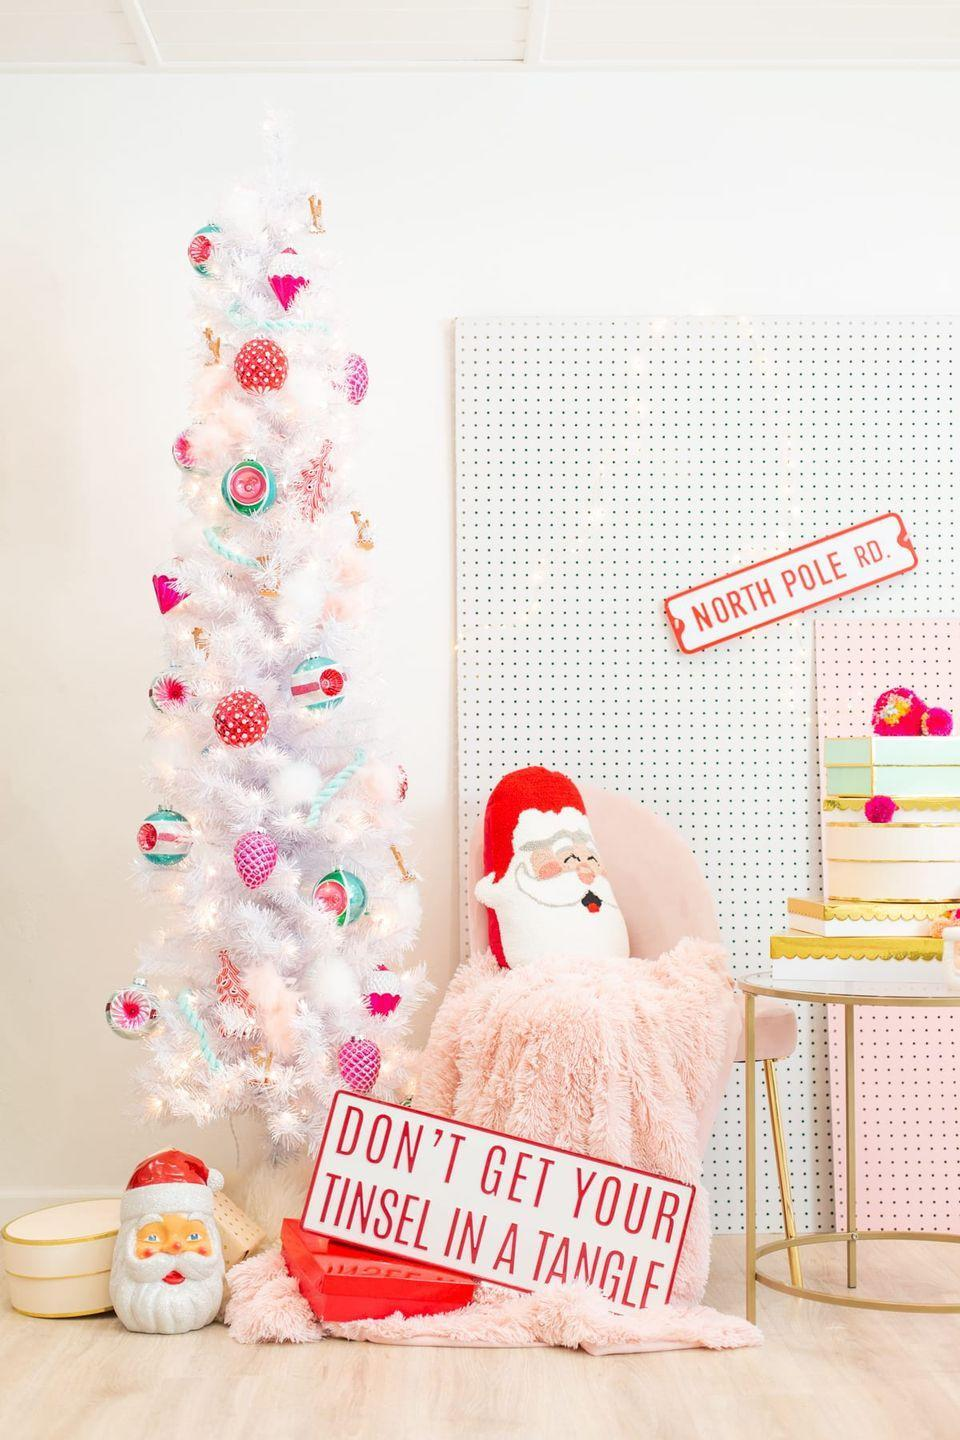 """<p>Keep things modern and interesting with a fun pink, red, and green color palette.</p><p><strong><em>Get the tutorial at <a href=""""https://lovelyindeed.com/hey-holidays-a-pink-red-and-green-christmas-tree/"""" rel=""""nofollow noopener"""" target=""""_blank"""" data-ylk=""""slk:Lovely Indeed"""" class=""""link rapid-noclick-resp"""">Lovely Indeed</a>. </em></strong></p><p><a class=""""link rapid-noclick-resp"""" href=""""https://www.amazon.com/dp/B017E9ZHMU/?tag=syn-yahoo-20&ascsubtag=%5Bartid%7C10070.g.2025%5Bsrc%7Cyahoo-us"""" rel=""""nofollow noopener"""" target=""""_blank"""" data-ylk=""""slk:SHOP BLUE ROPE GARLAND"""">SHOP BLUE ROPE GARLAND</a></p>"""